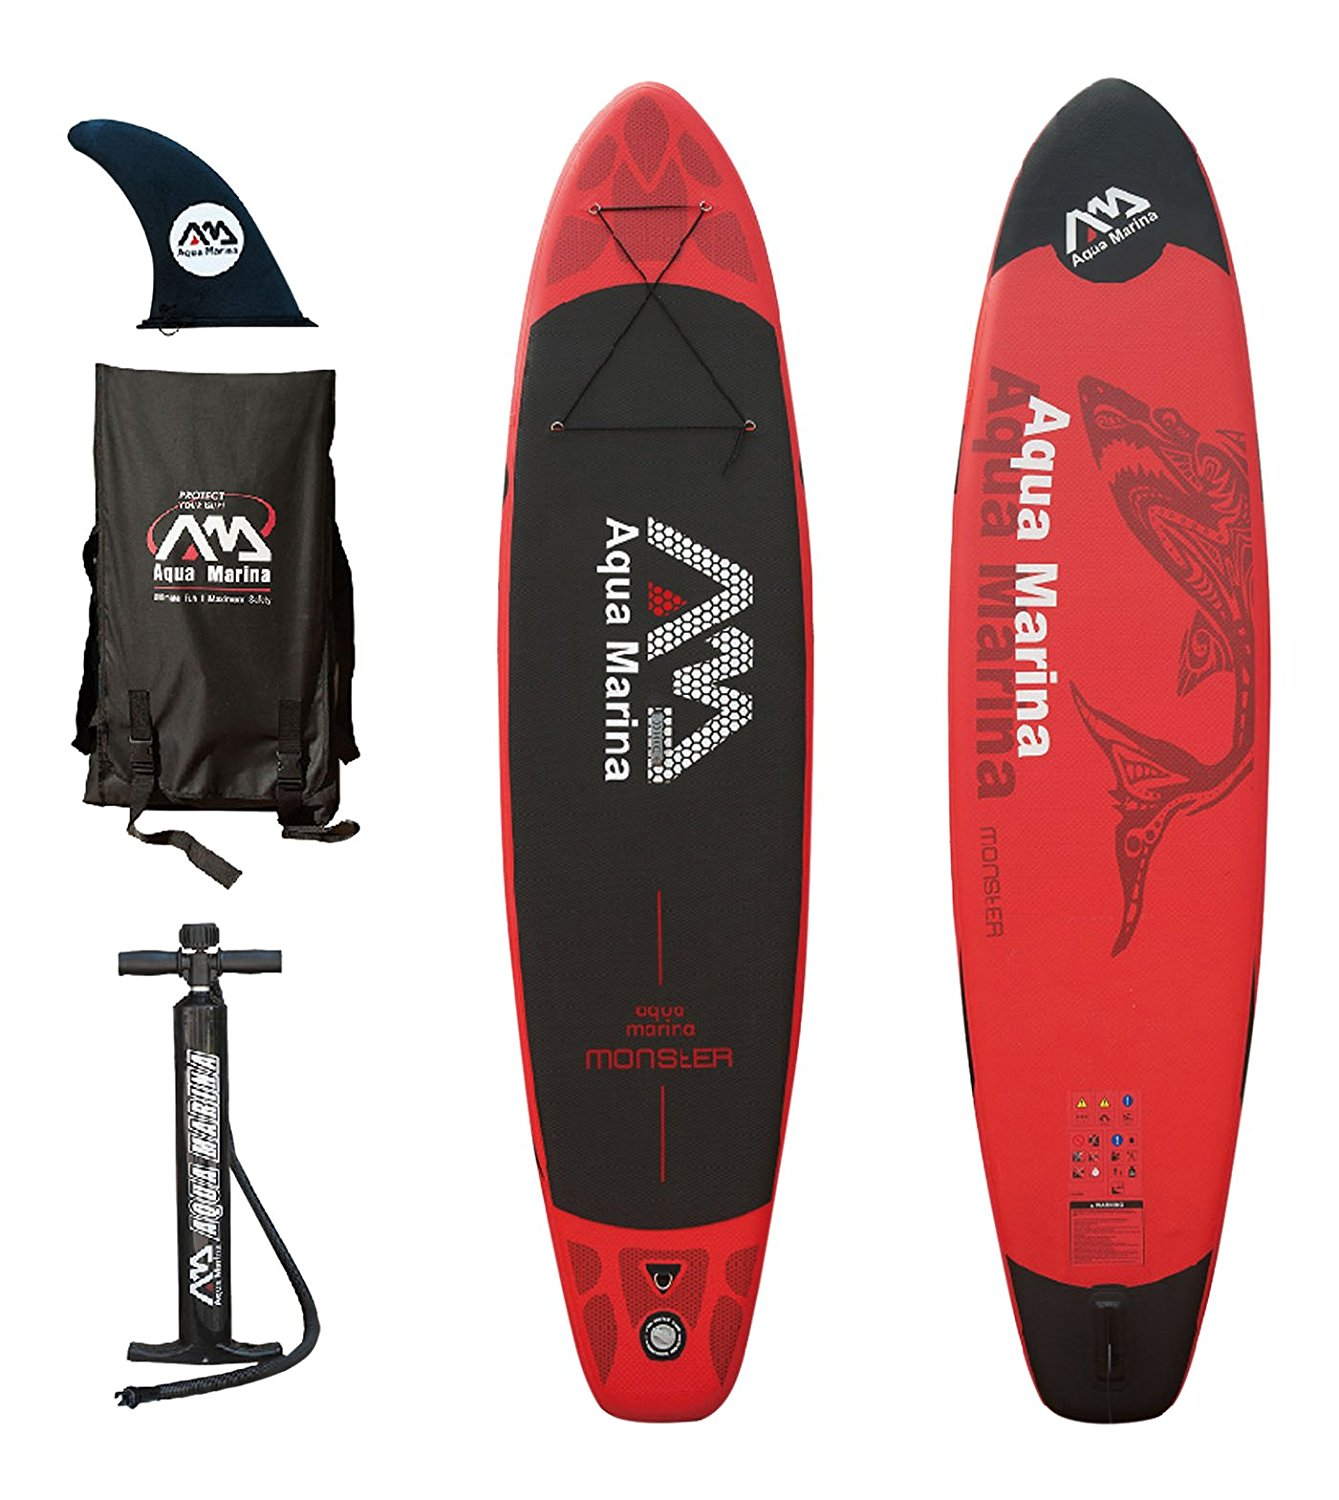 Aqua Marina MONSTER Inflatable Stand-up Paddle Board by